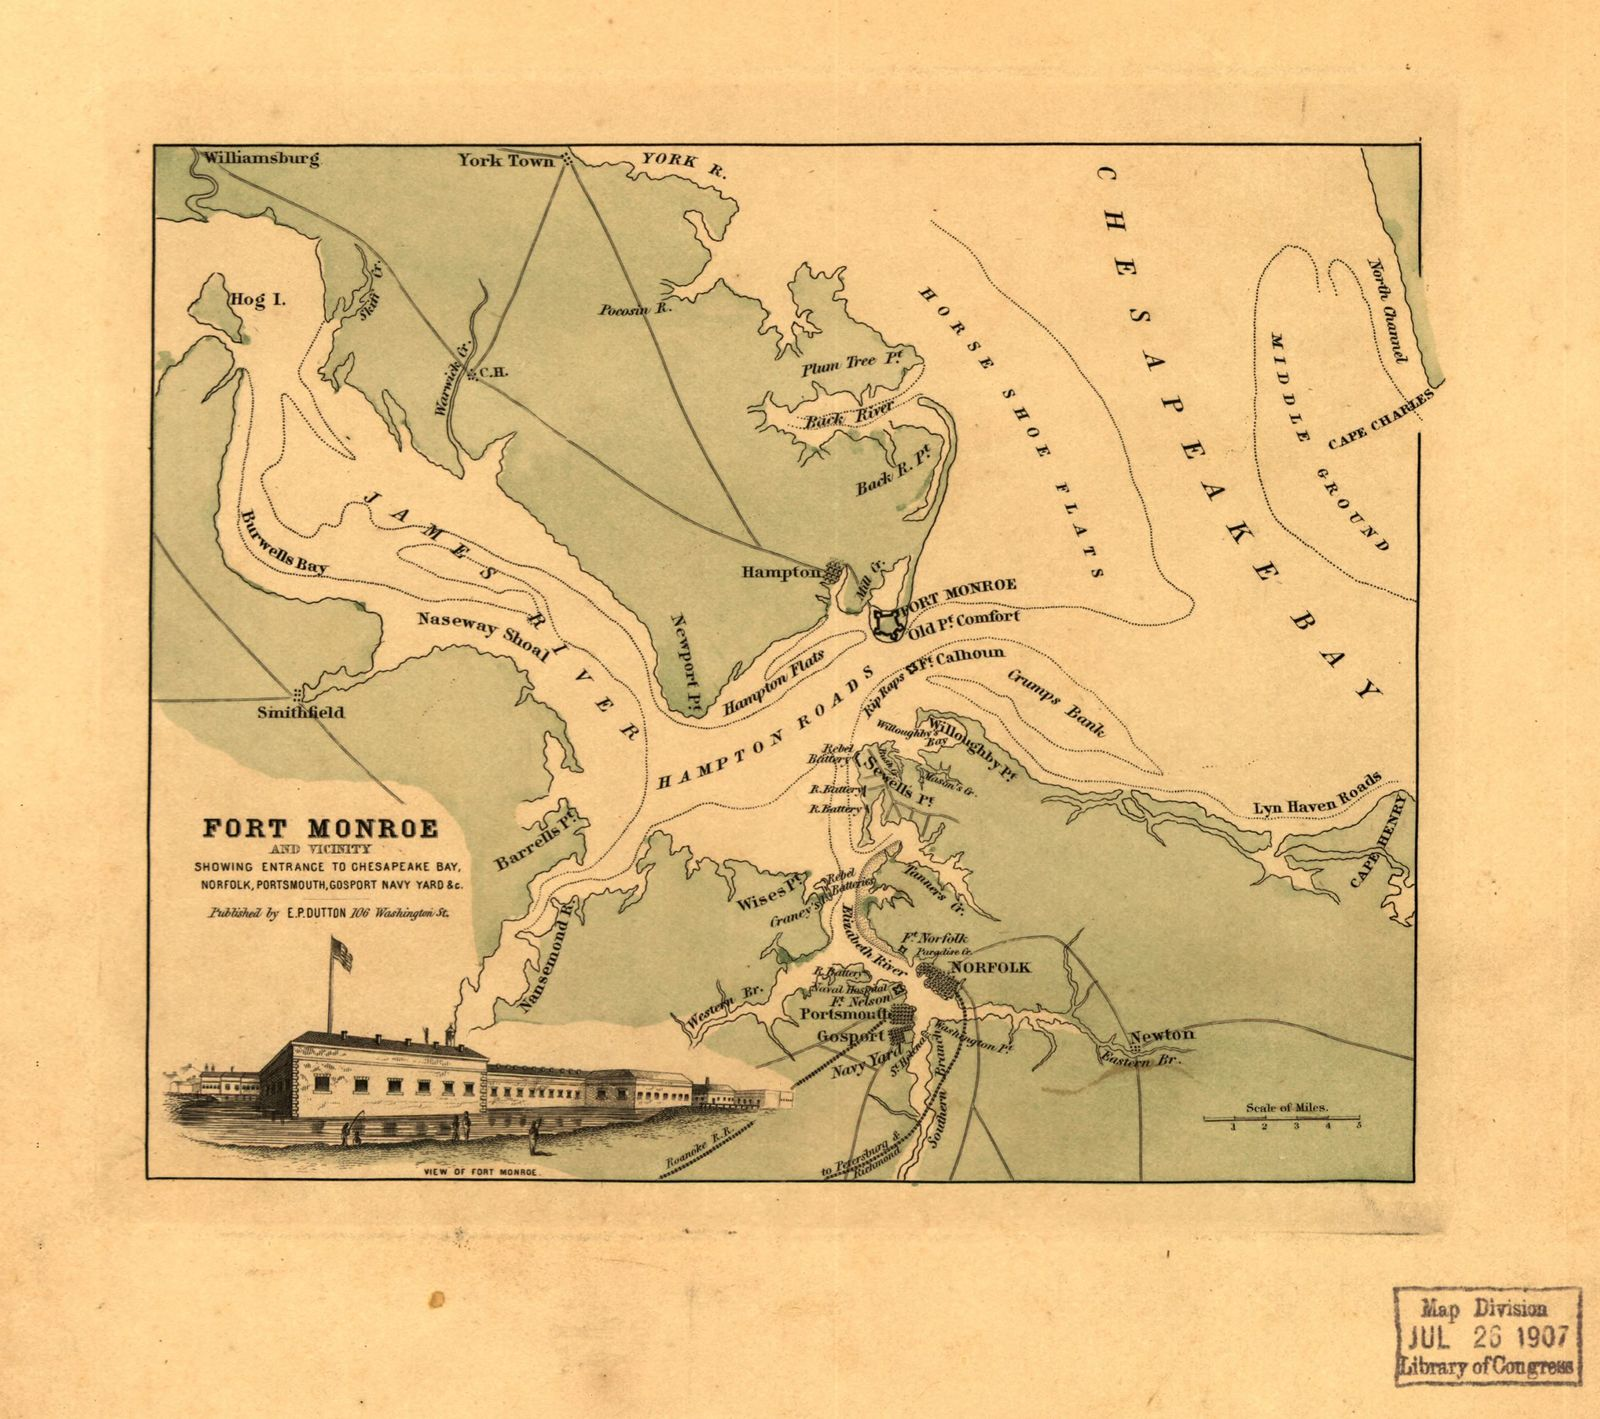 Fort Monroe and vicinity showing entrance to Chesapeake Bay, Norfolk, Portsmouth, Gosport Navy Yard &c.